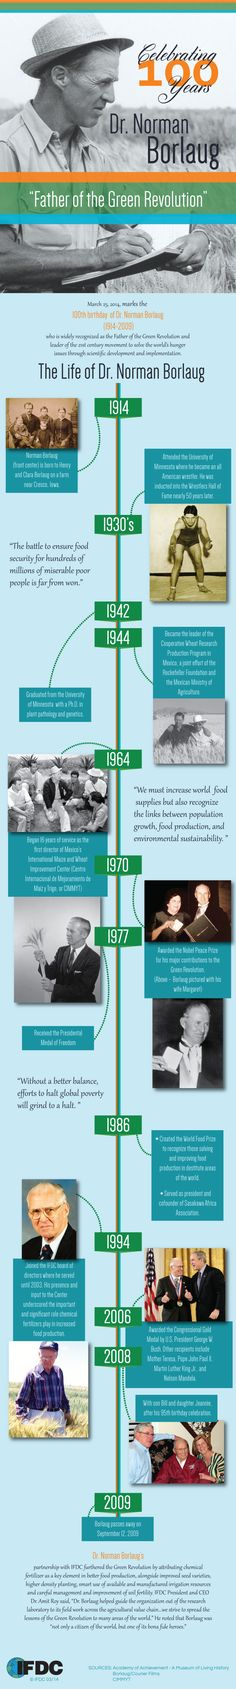 A short timeline of Dr. Norman Borlaug's life. March 25th marks his 100th birthday (1914-2009) #Borlaug100 #infographic